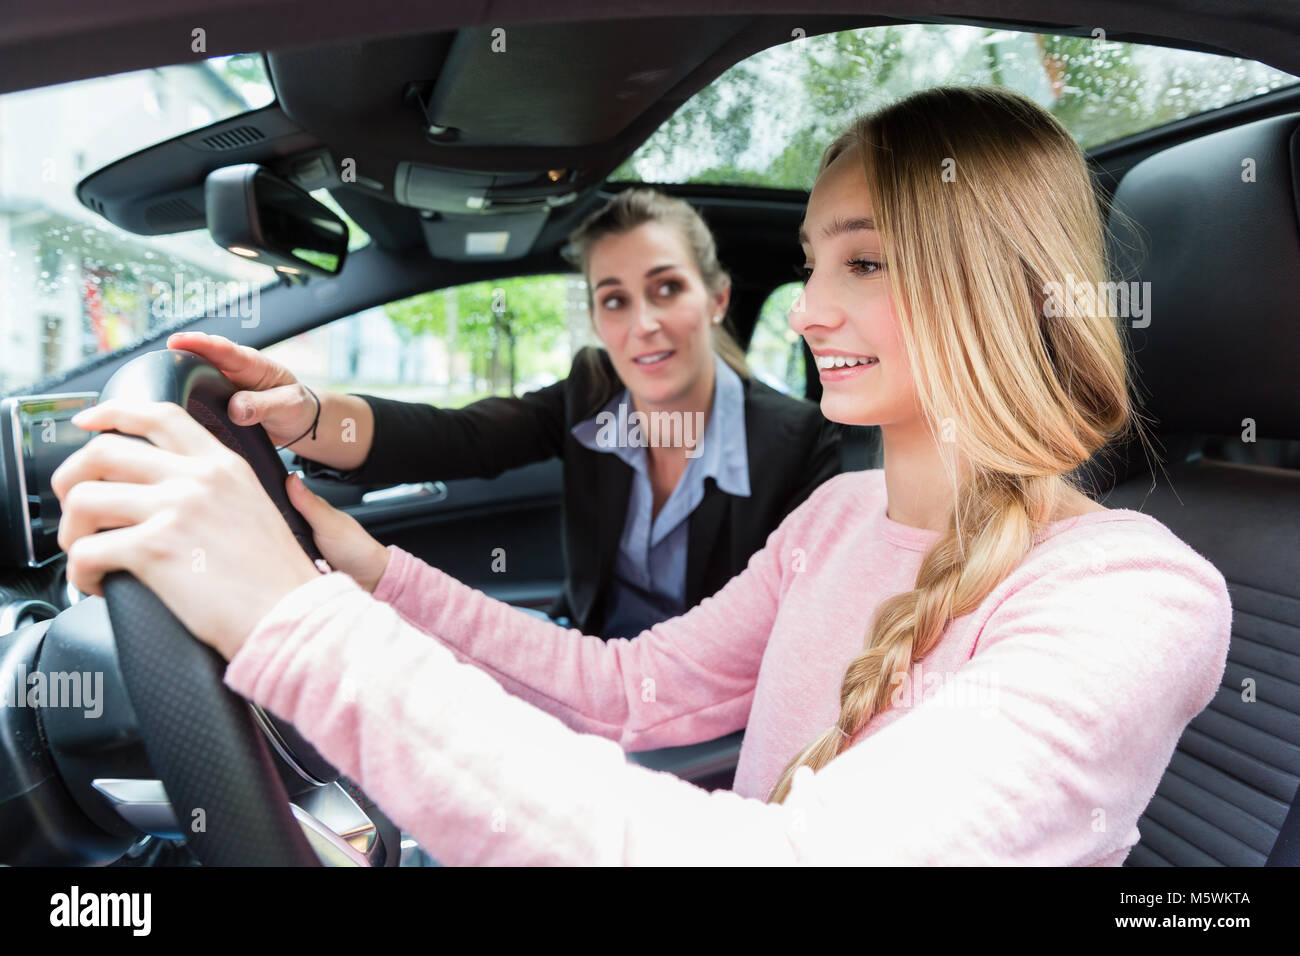 Student on wheel of car in driving lesson with her teacher - Stock Image